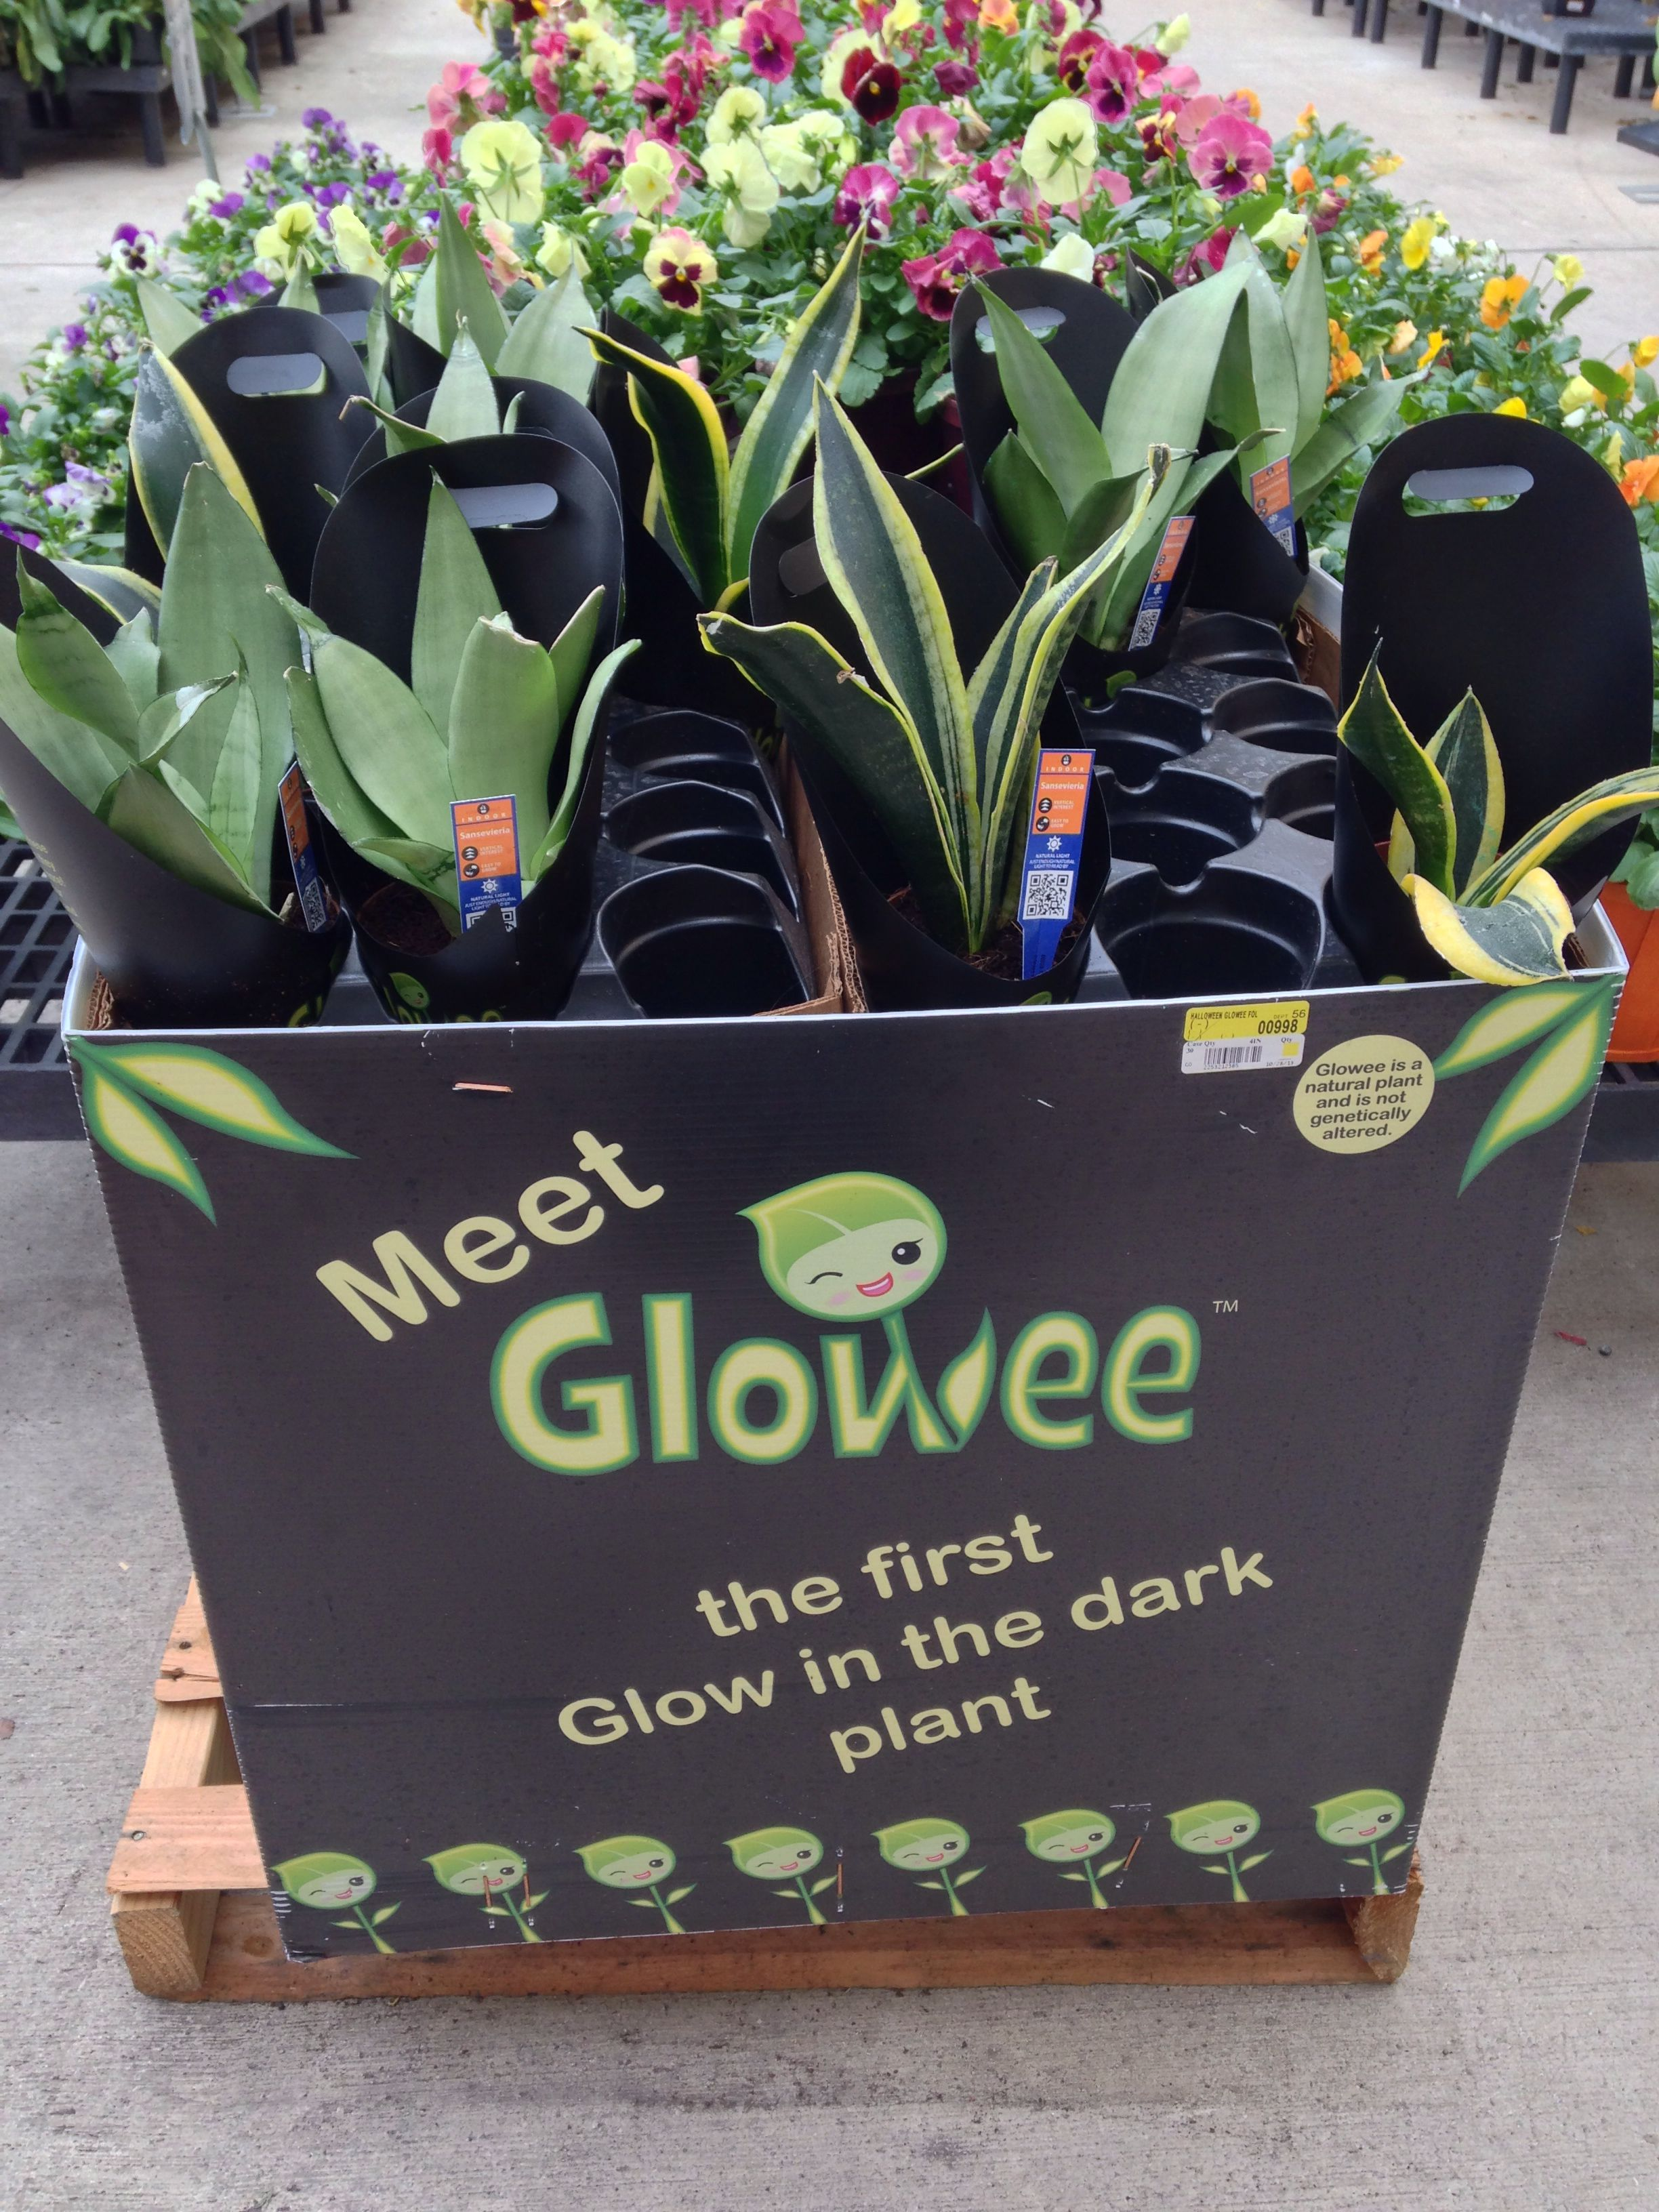 Begonia Waterfall Kopen Glowee The First Glowing Plant Claims That The Plant Is Not Bio